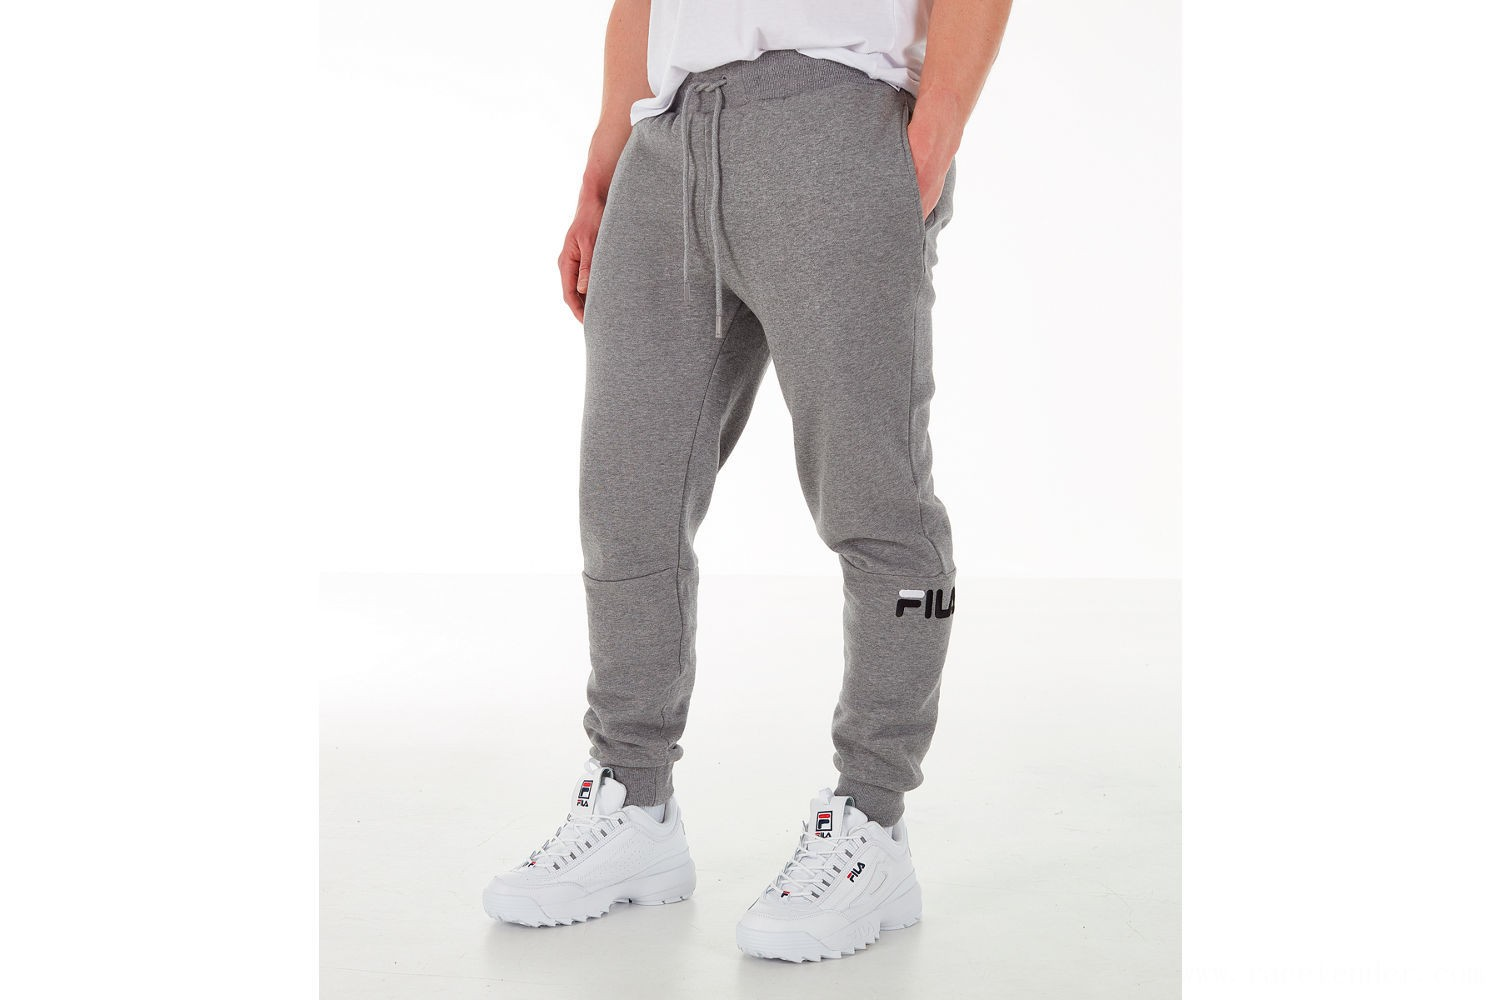 Fila Men's Topher Fleece Jogger Pants - Grey